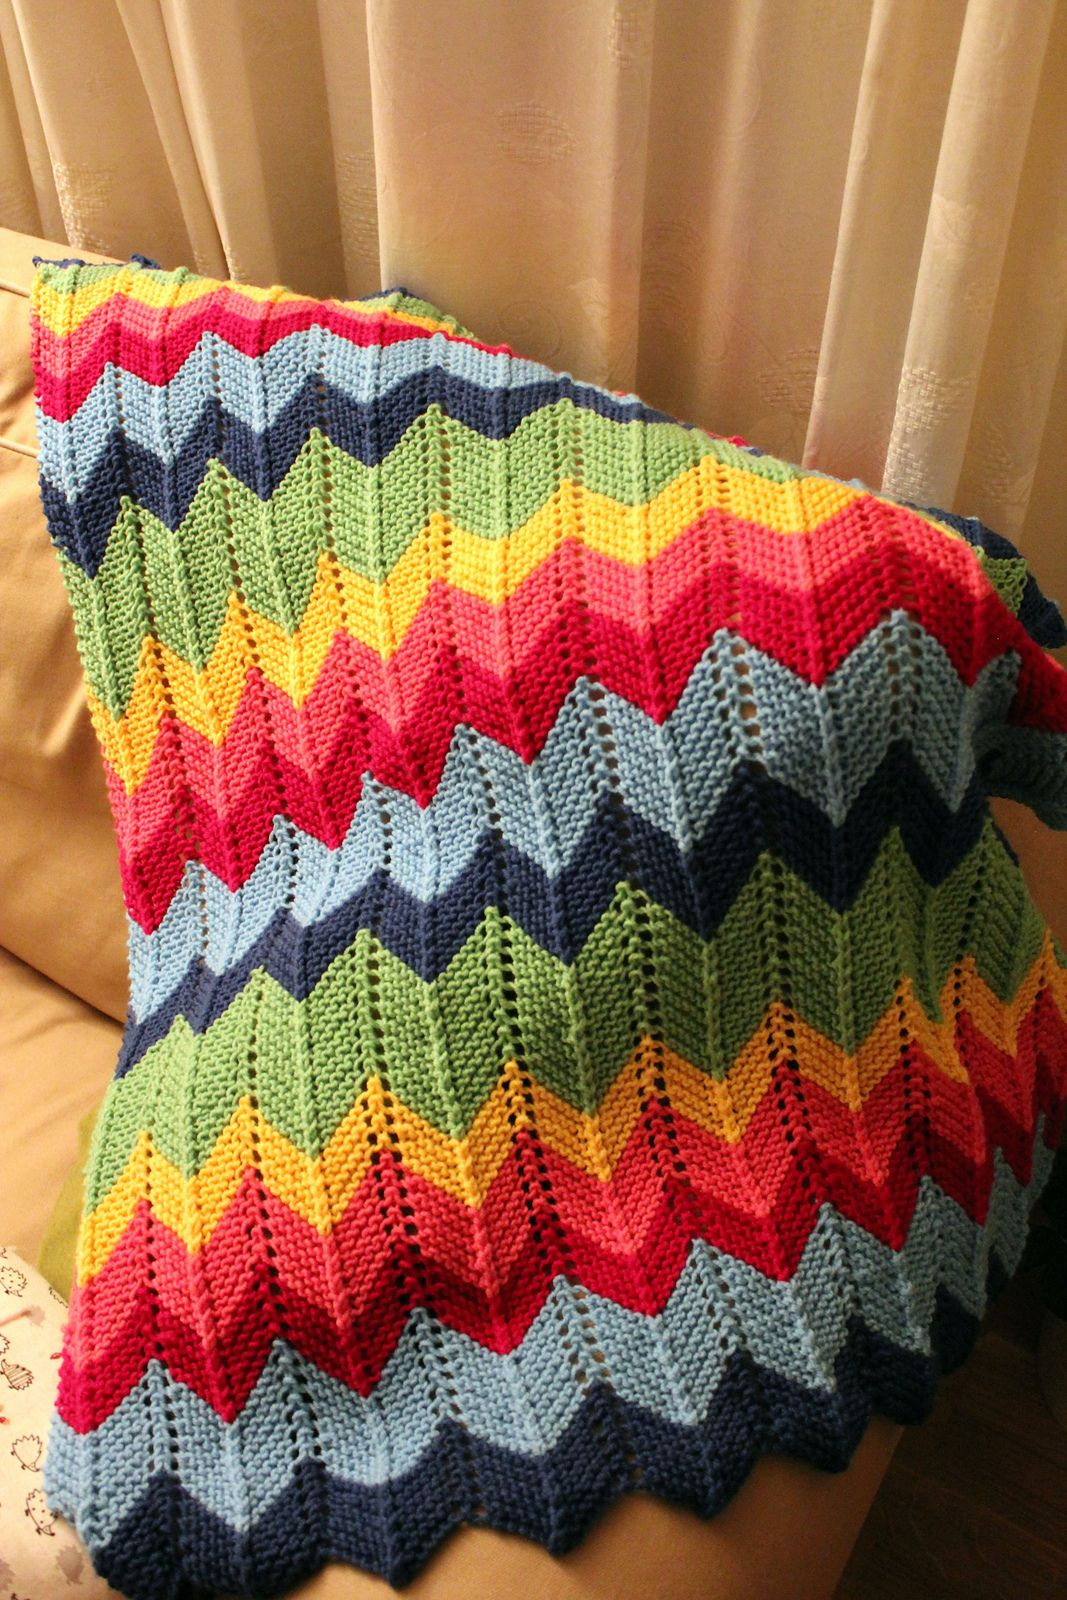 Ravelry: McMaren\'s Pickles Baby blanket another colour way | knit ...